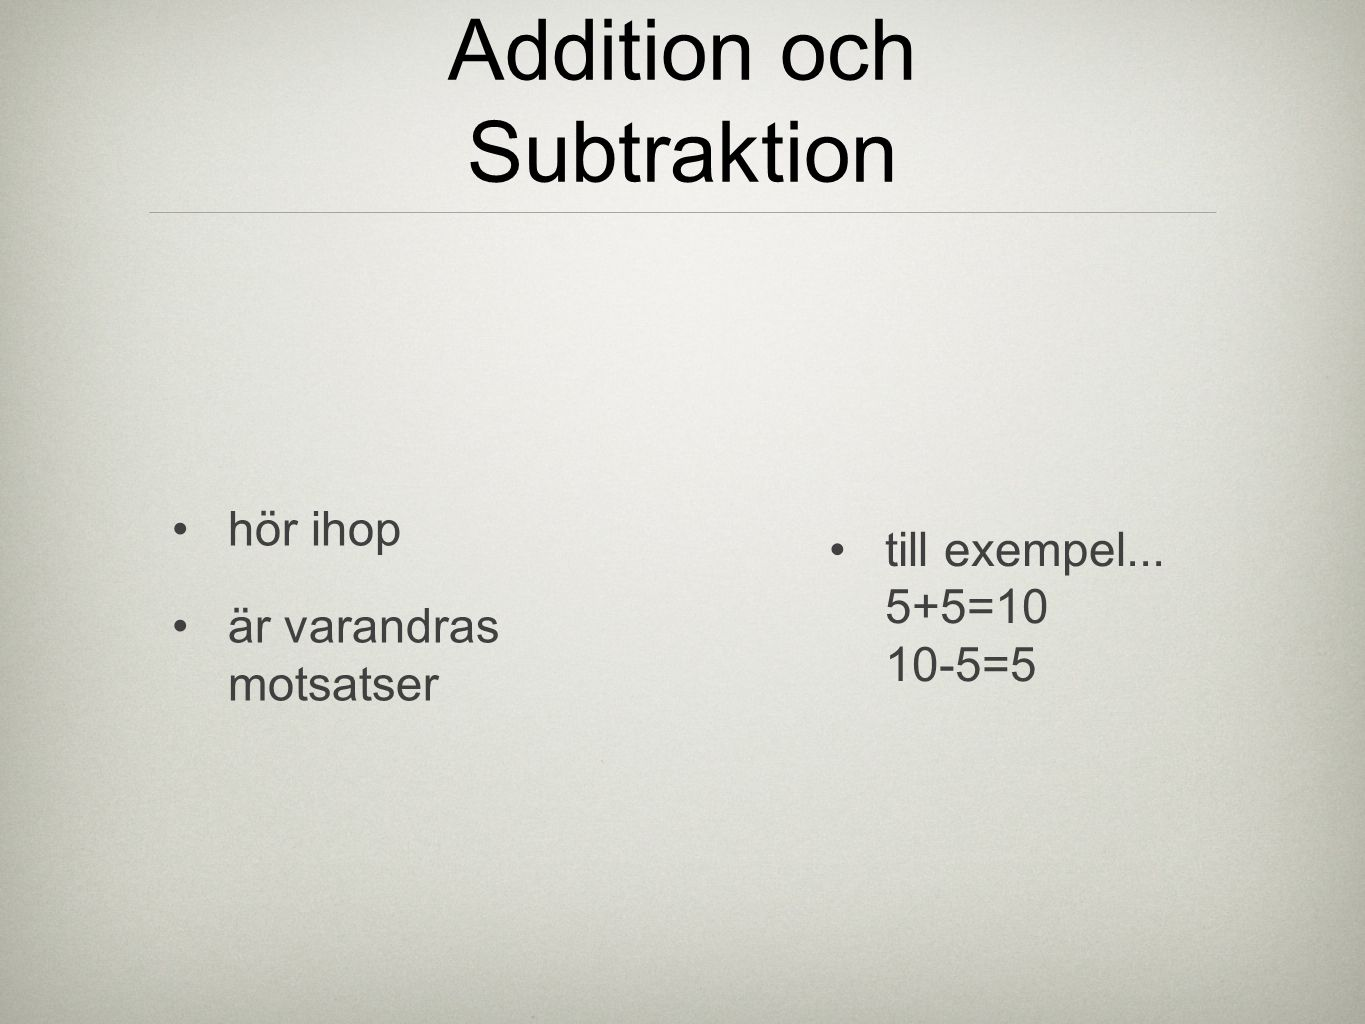 Addition och Subtraktion